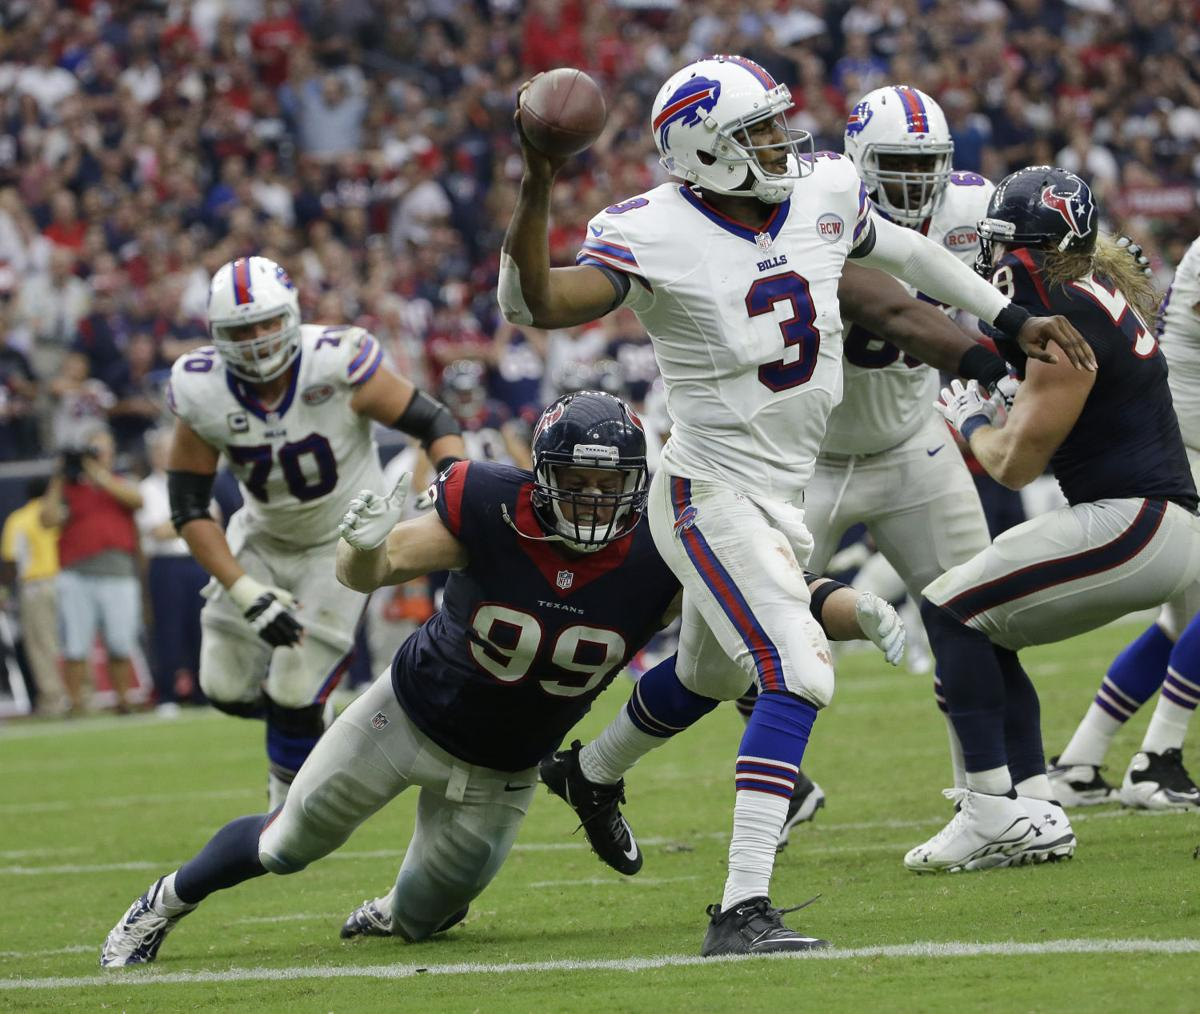 c85a74b6ac7 Four reasons why Buffalo Bills benching E.J. Manuel for Kyle Orton is a bad  move